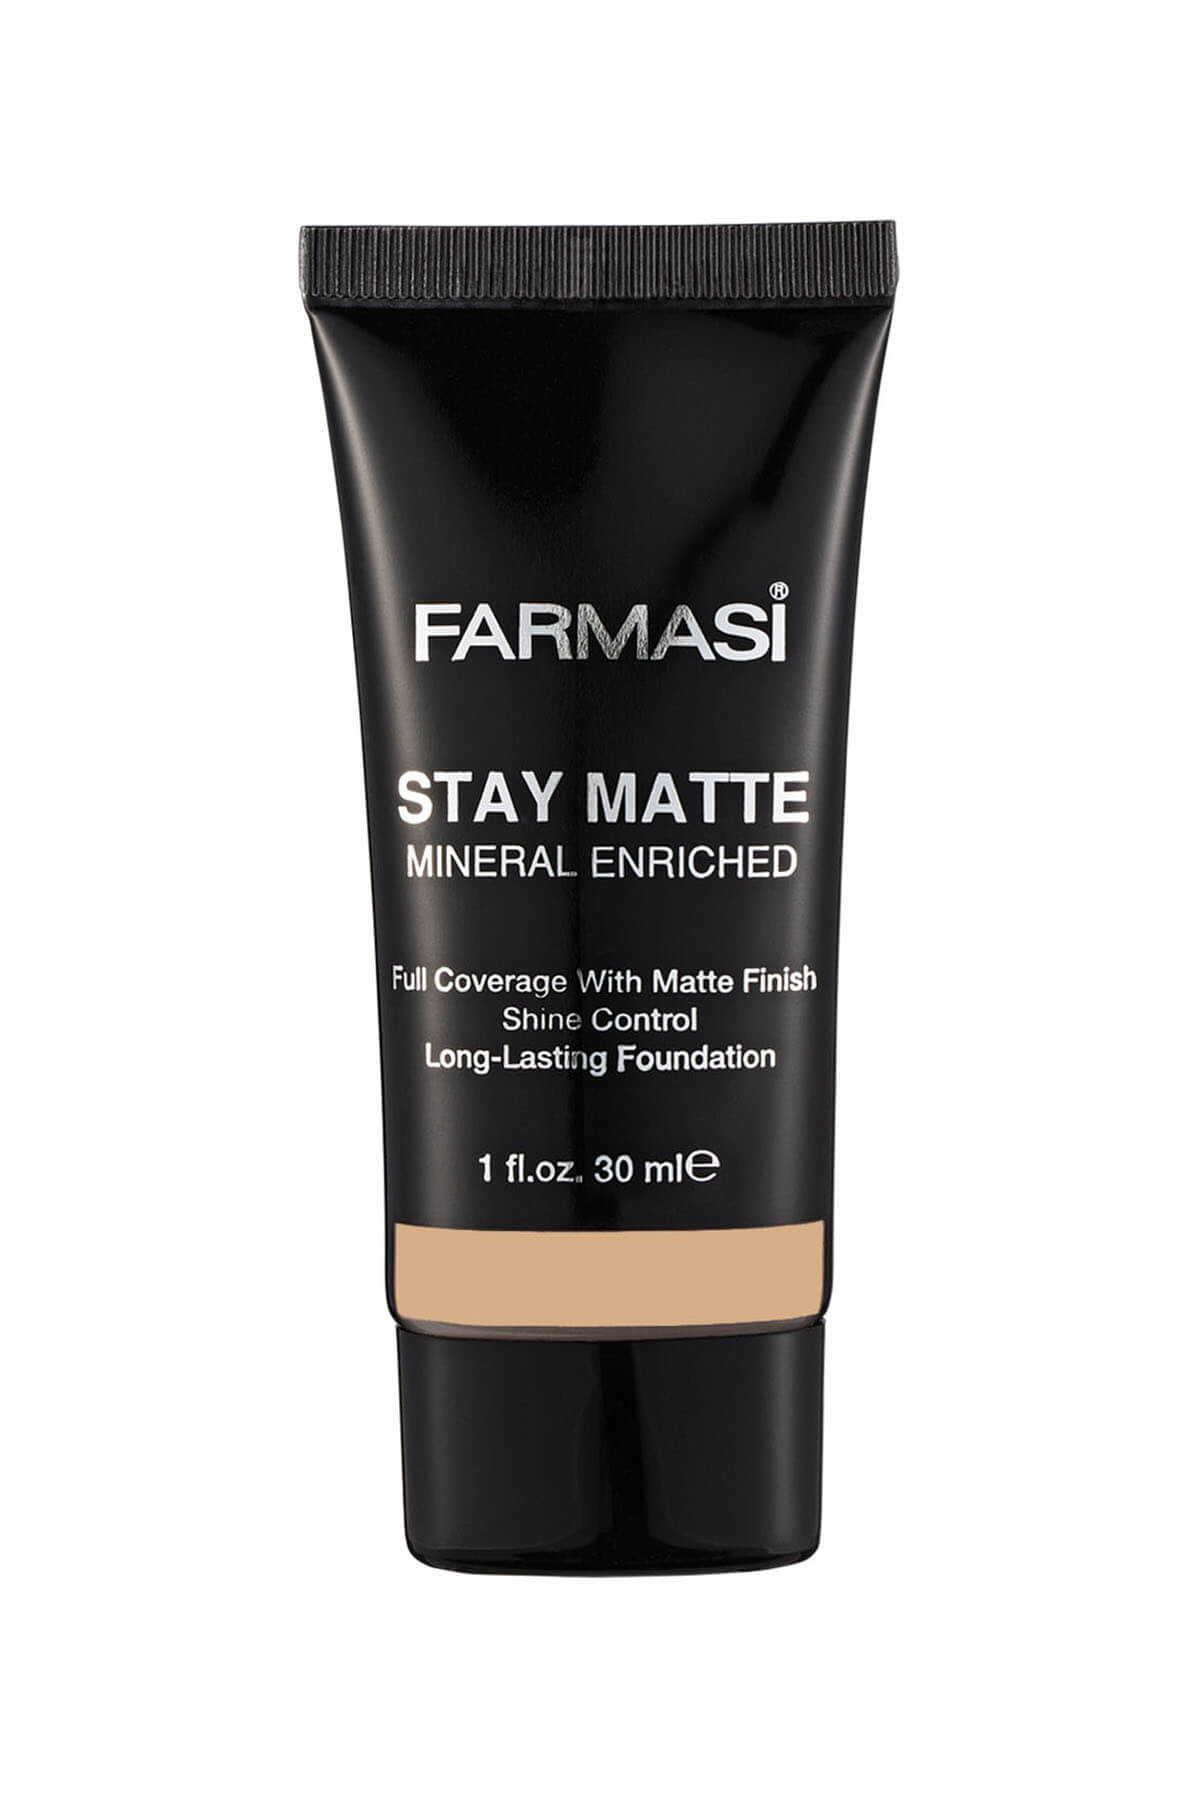 Farmasi Fondöten – Stay Matte Foundation Sand Beige No: 04 30 Ml 8690131712044 – 24.99 TL